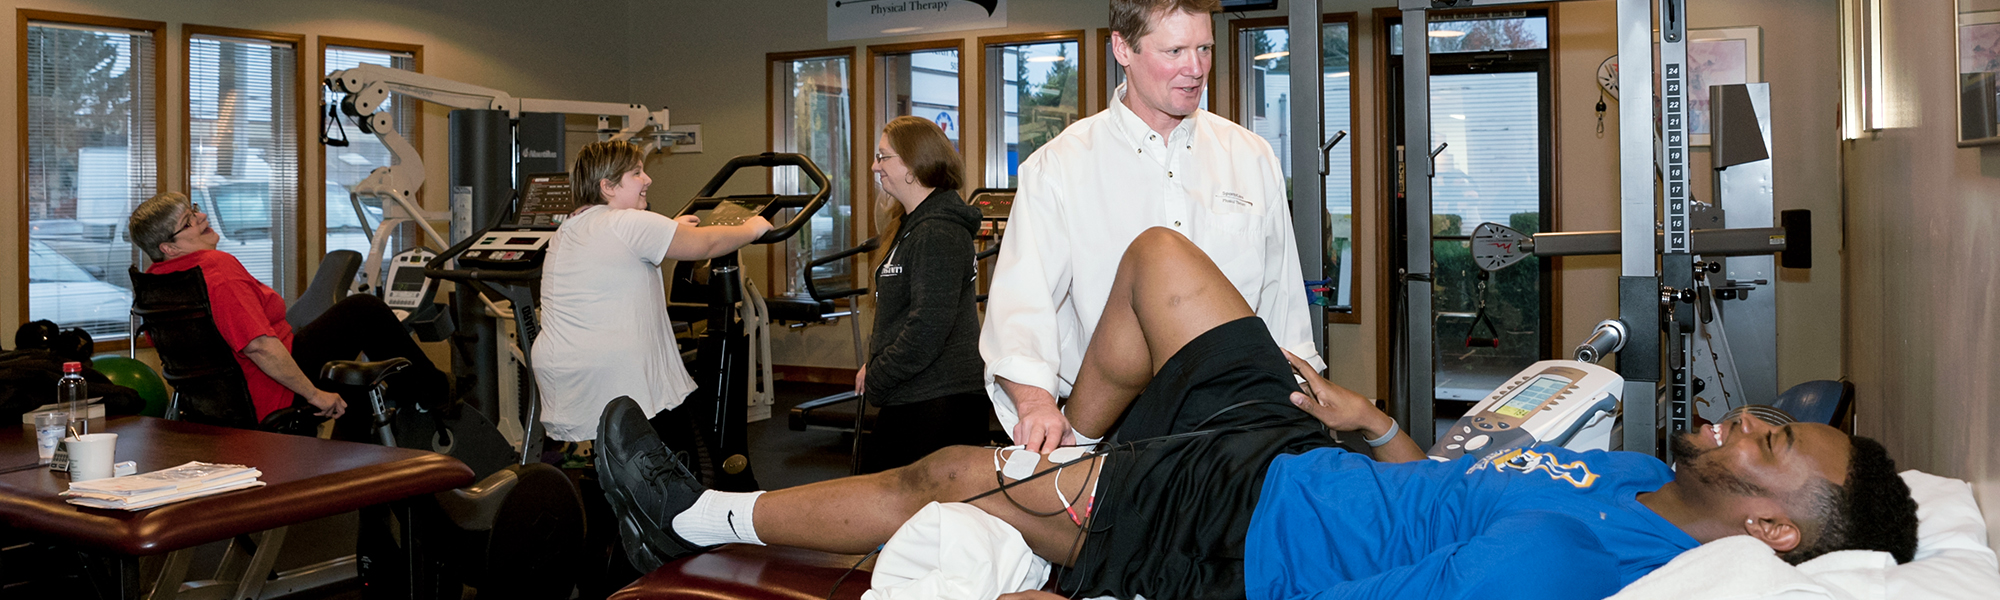 NE Portland Physical Therapy